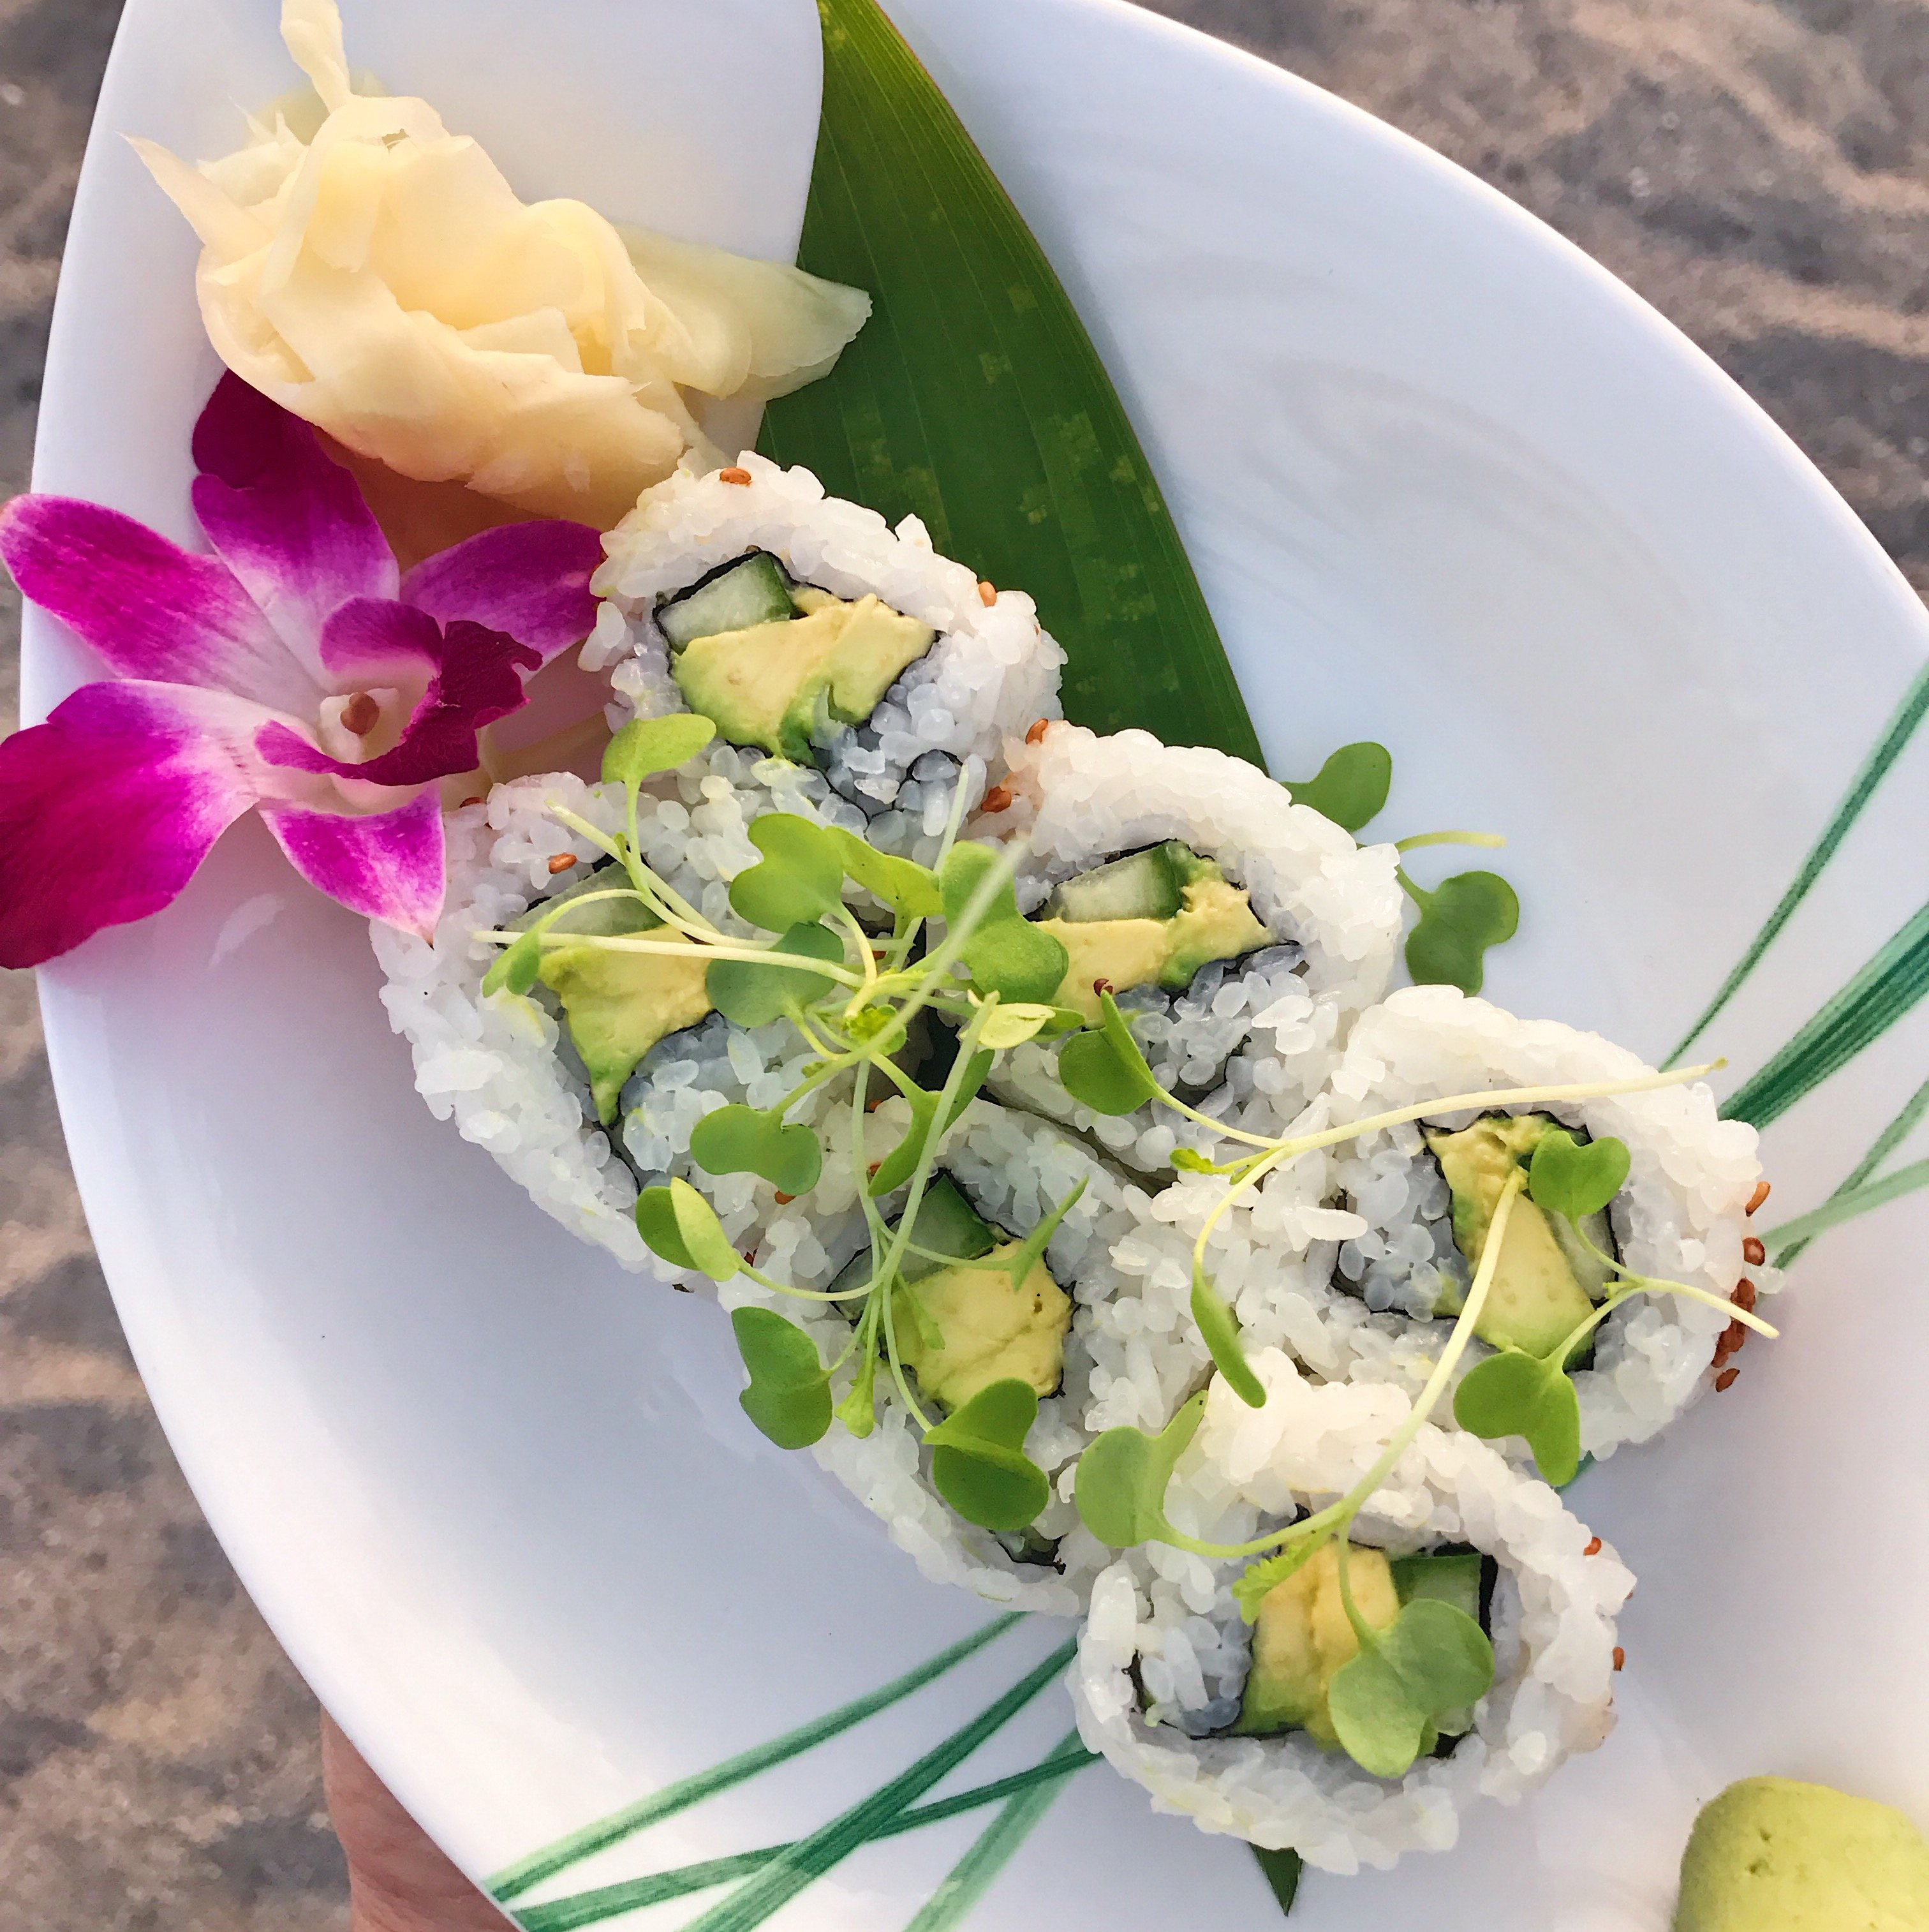 is your sushi gluten-free? www.healthygffamily.com